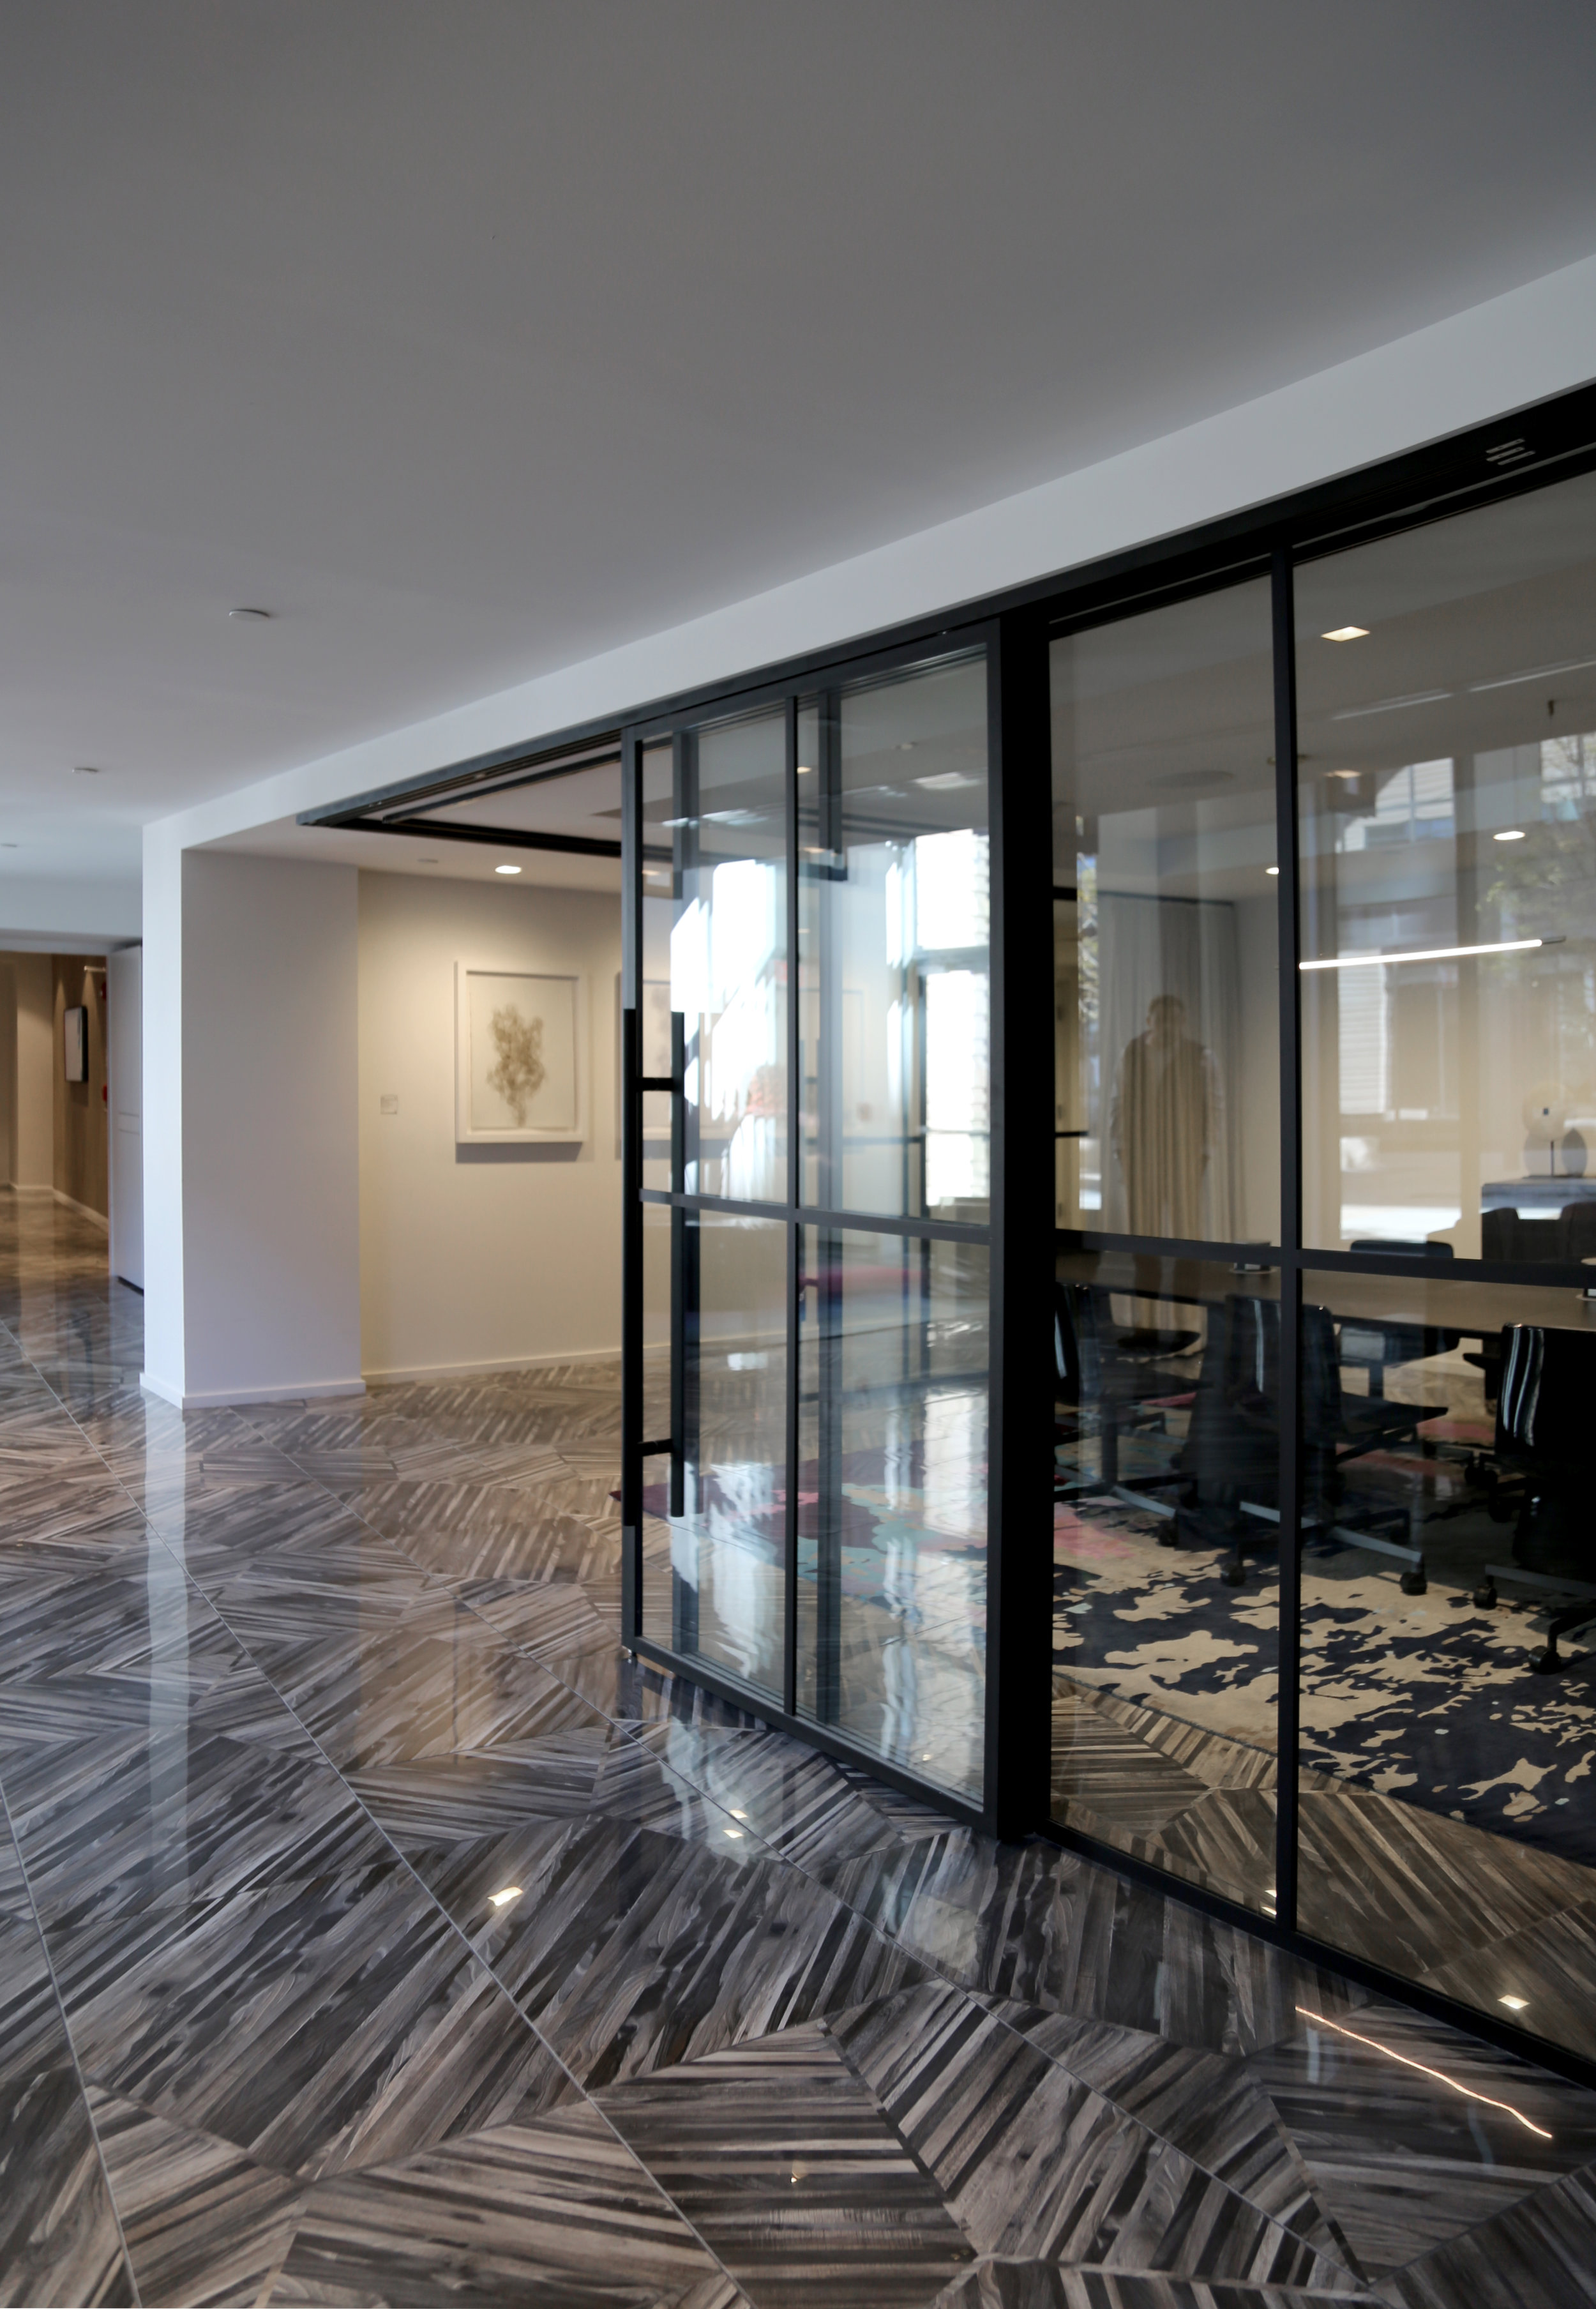 Modernus Sliding Stacking Glass Wall System Sliding Doors - Spaceworks AI.jpg